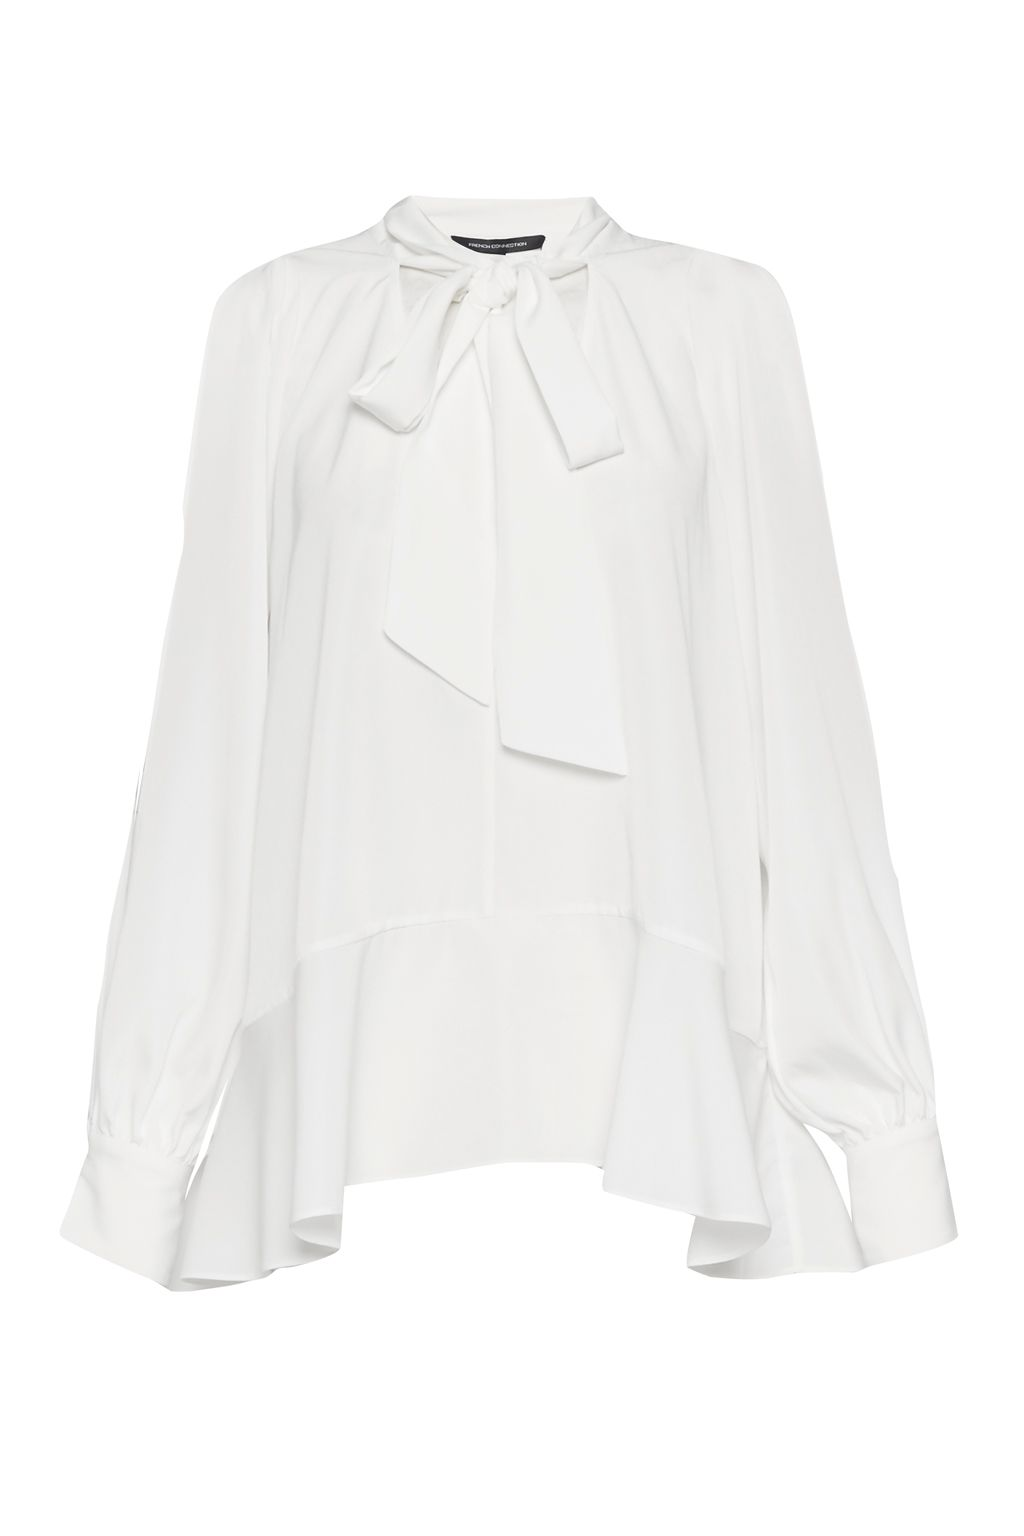 French Connection Classic Crepe Light Tie Neck Top, Winter White